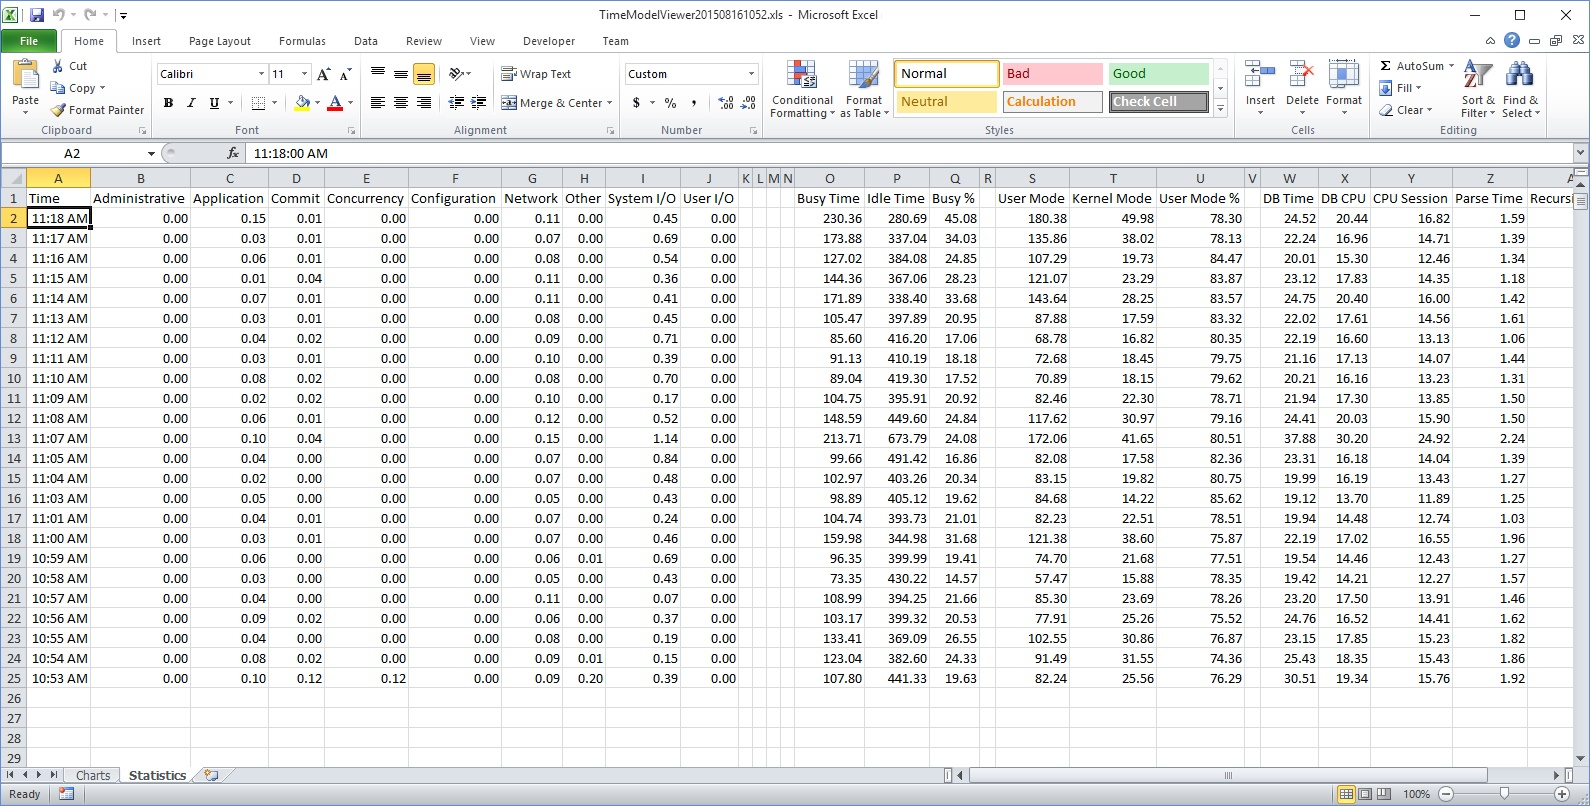 Binary options excel sheet trading no deposit bonus